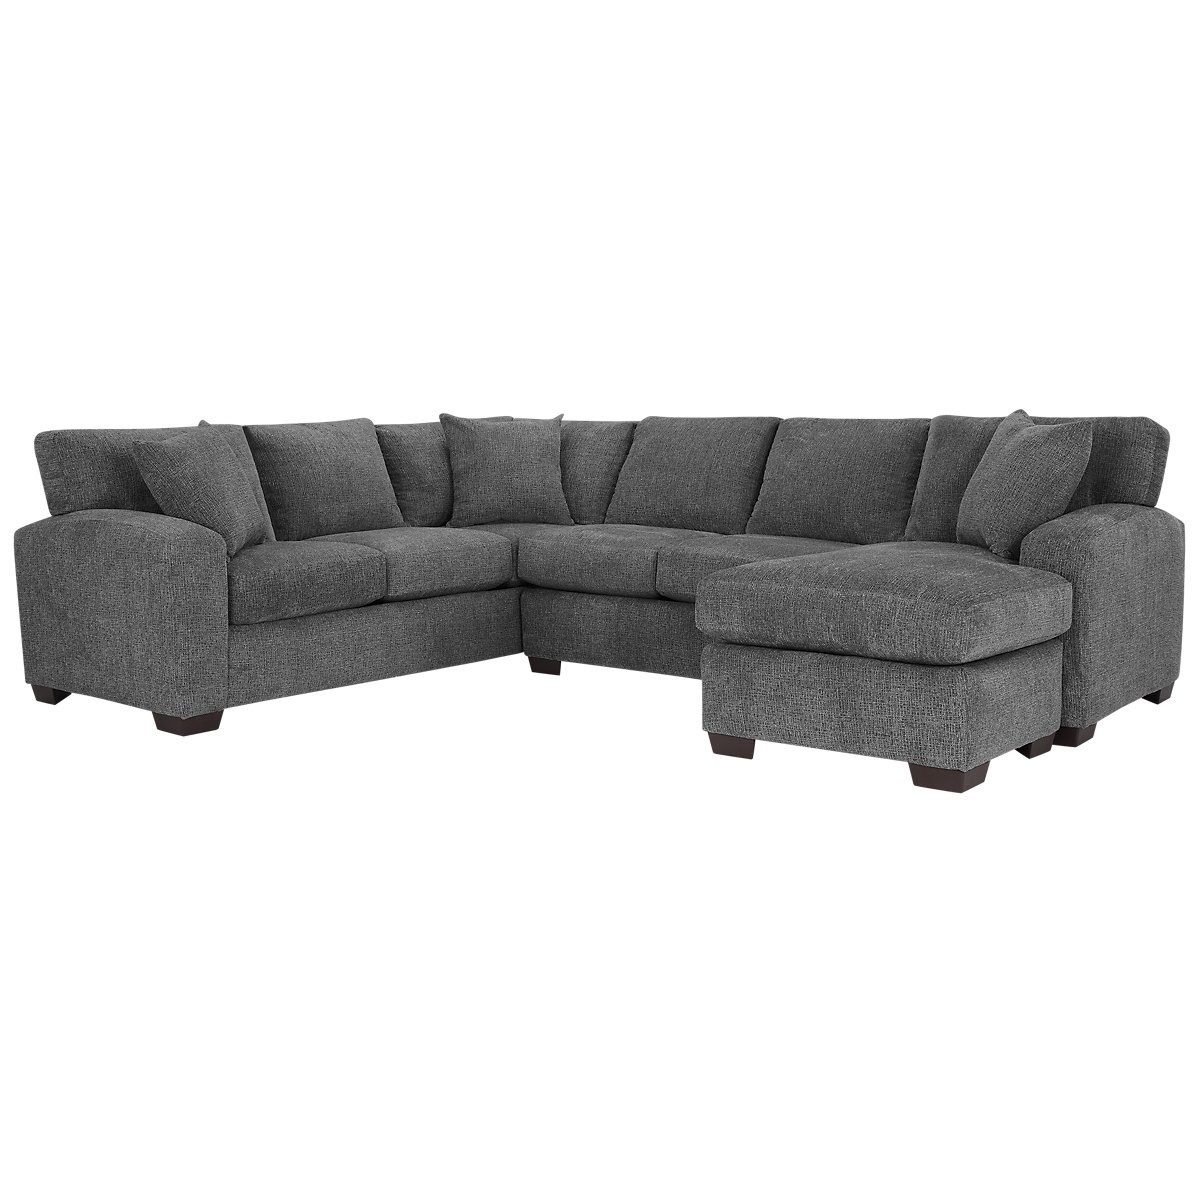 Gray Microfiber Sectional Sofa With Chaise City Furniture Adam Dark Gray Microfiber Right Chaise